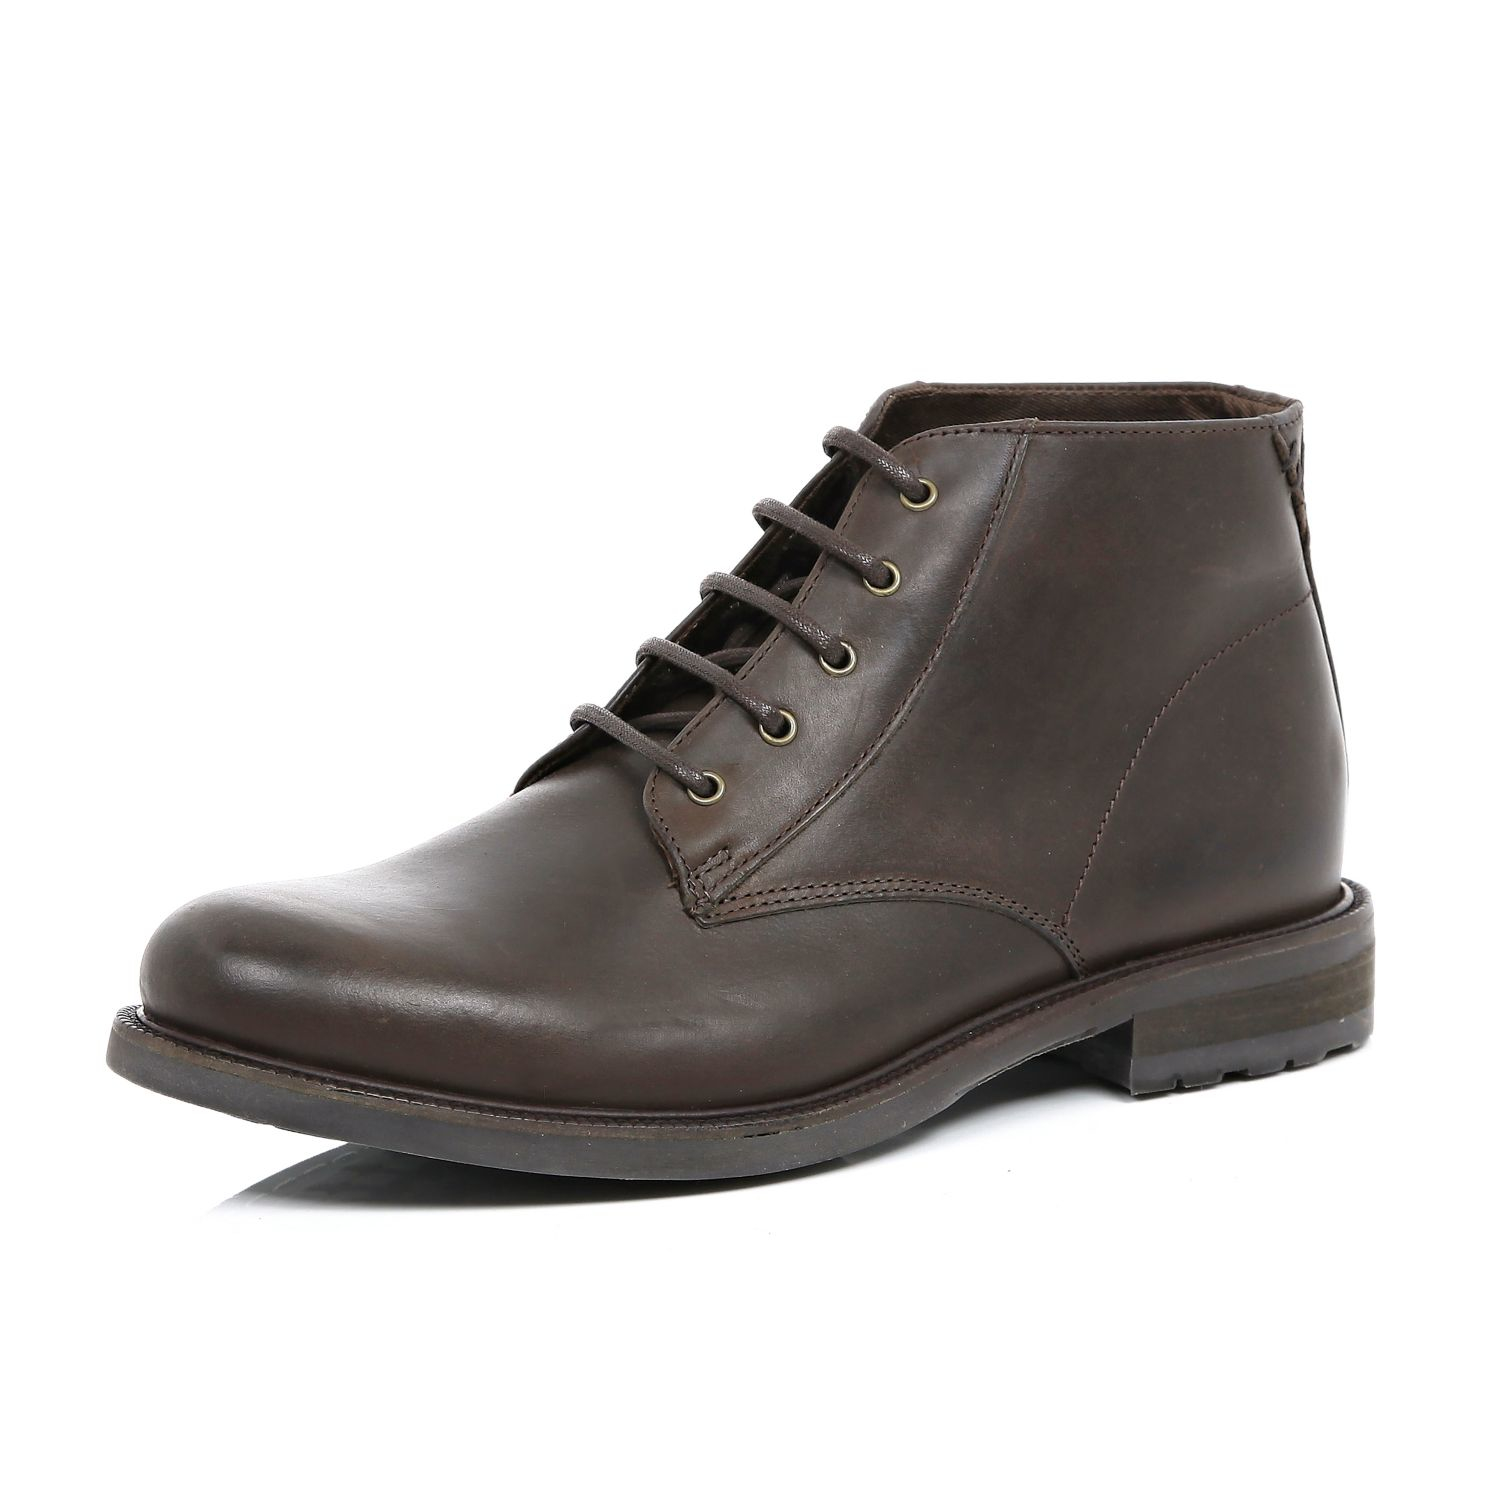 river island brown leather chukka boots in brown for